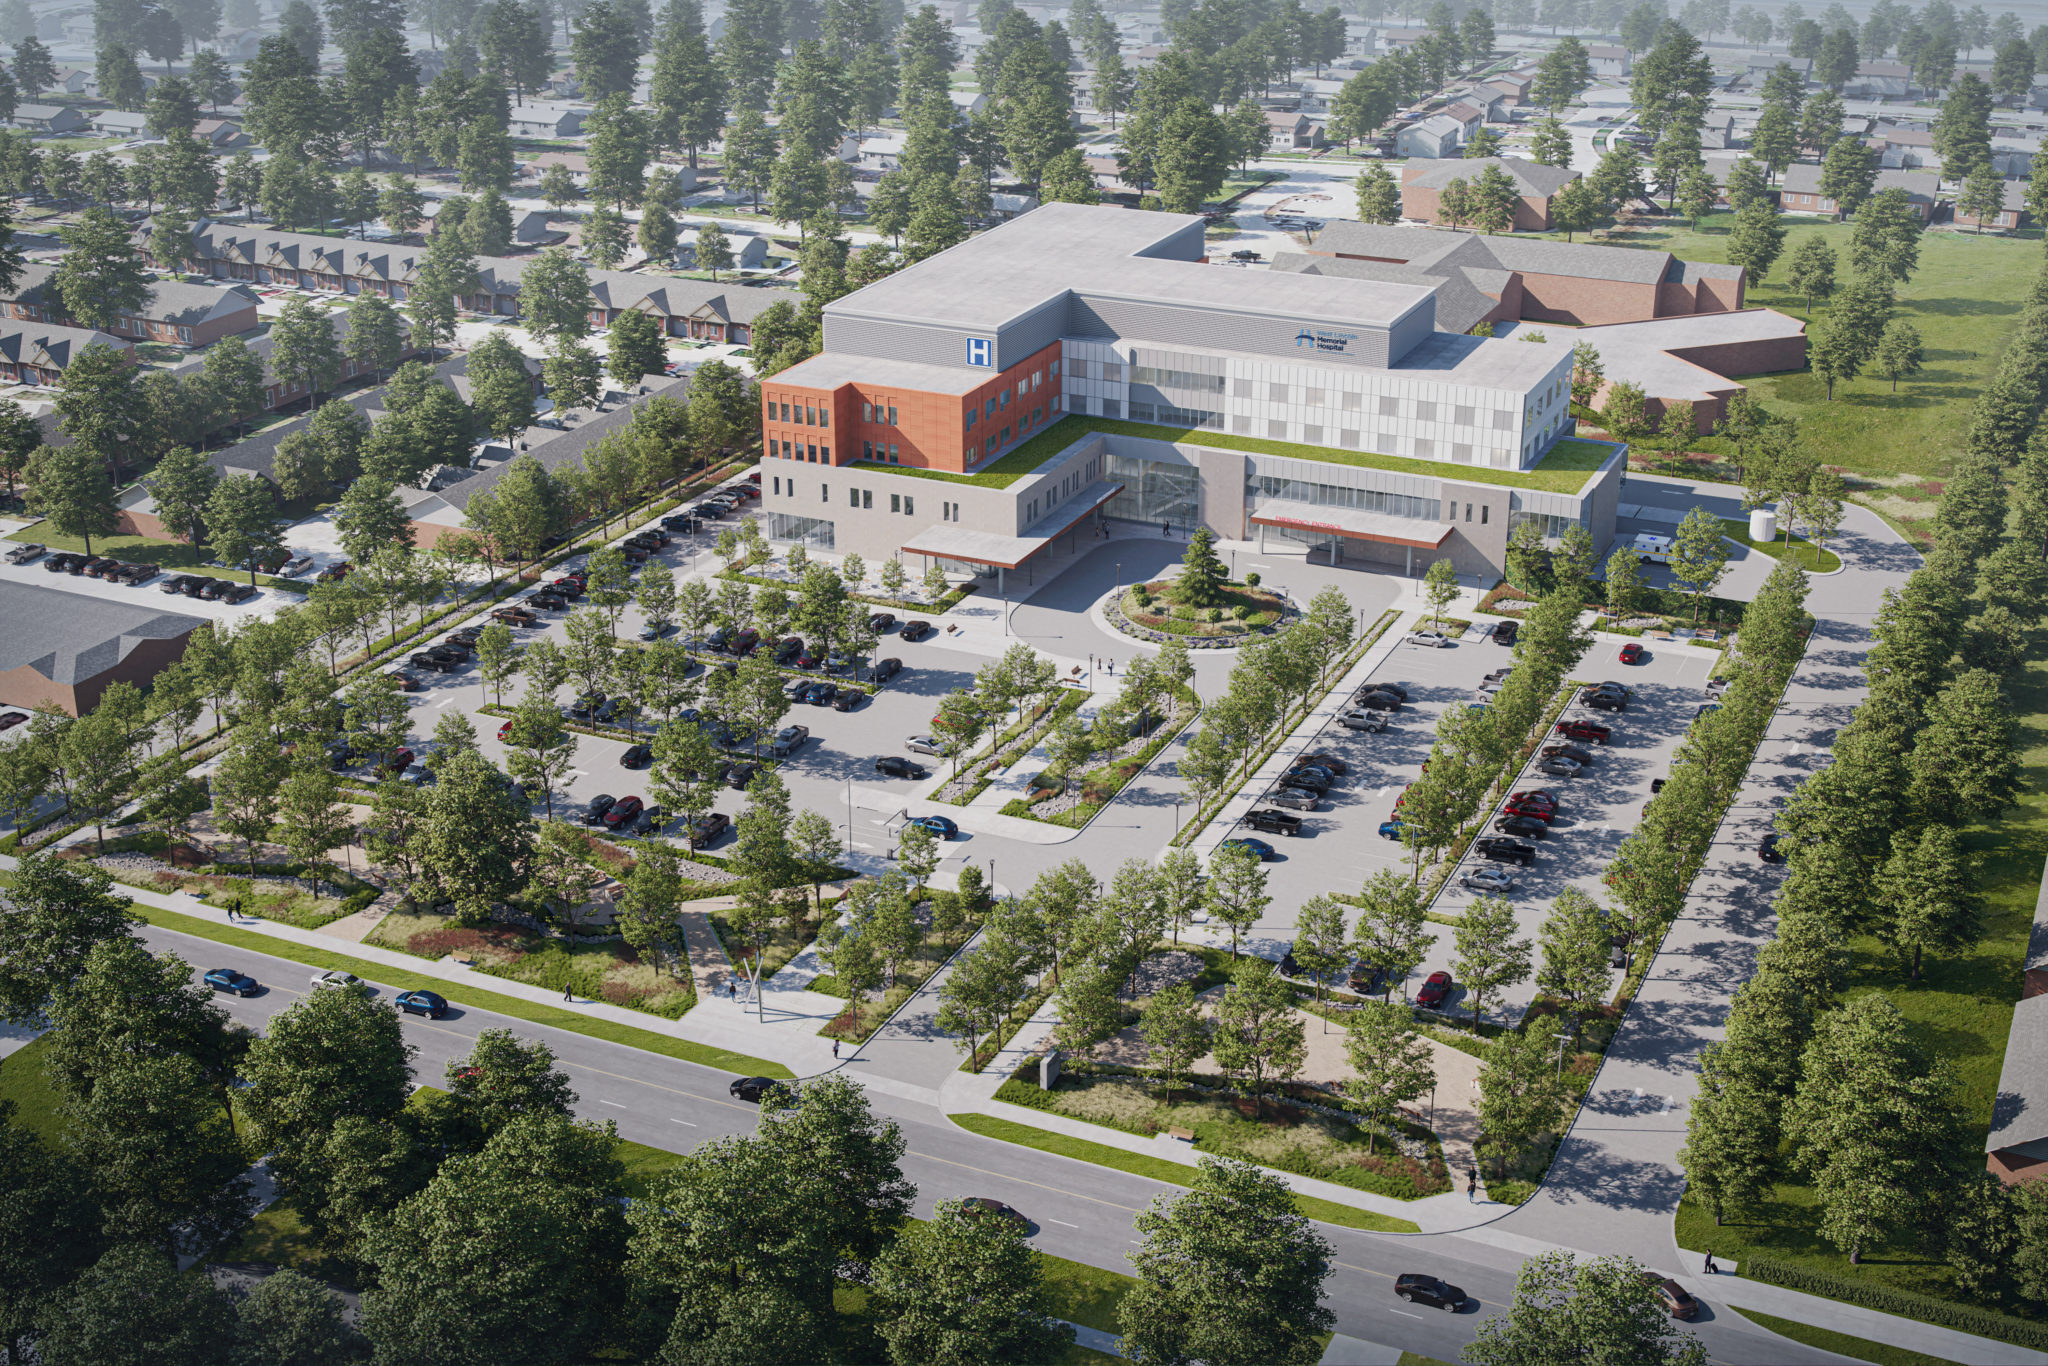 SNEAK PEEK: New WLMH renderings